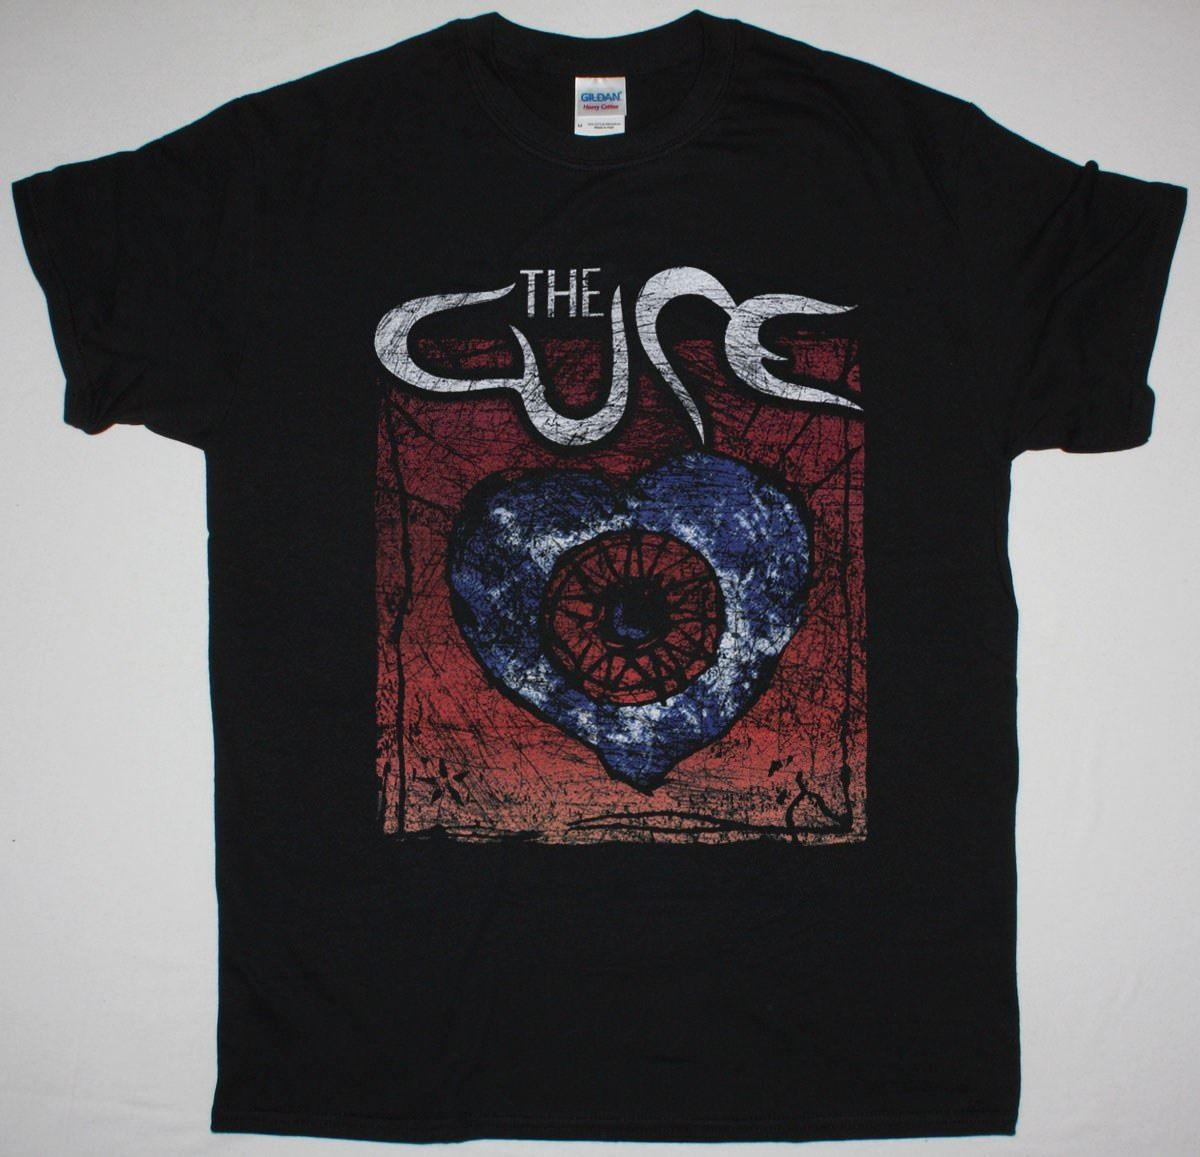 THE CURE FRIDAY I'M IN LOVE MENS BLACK T